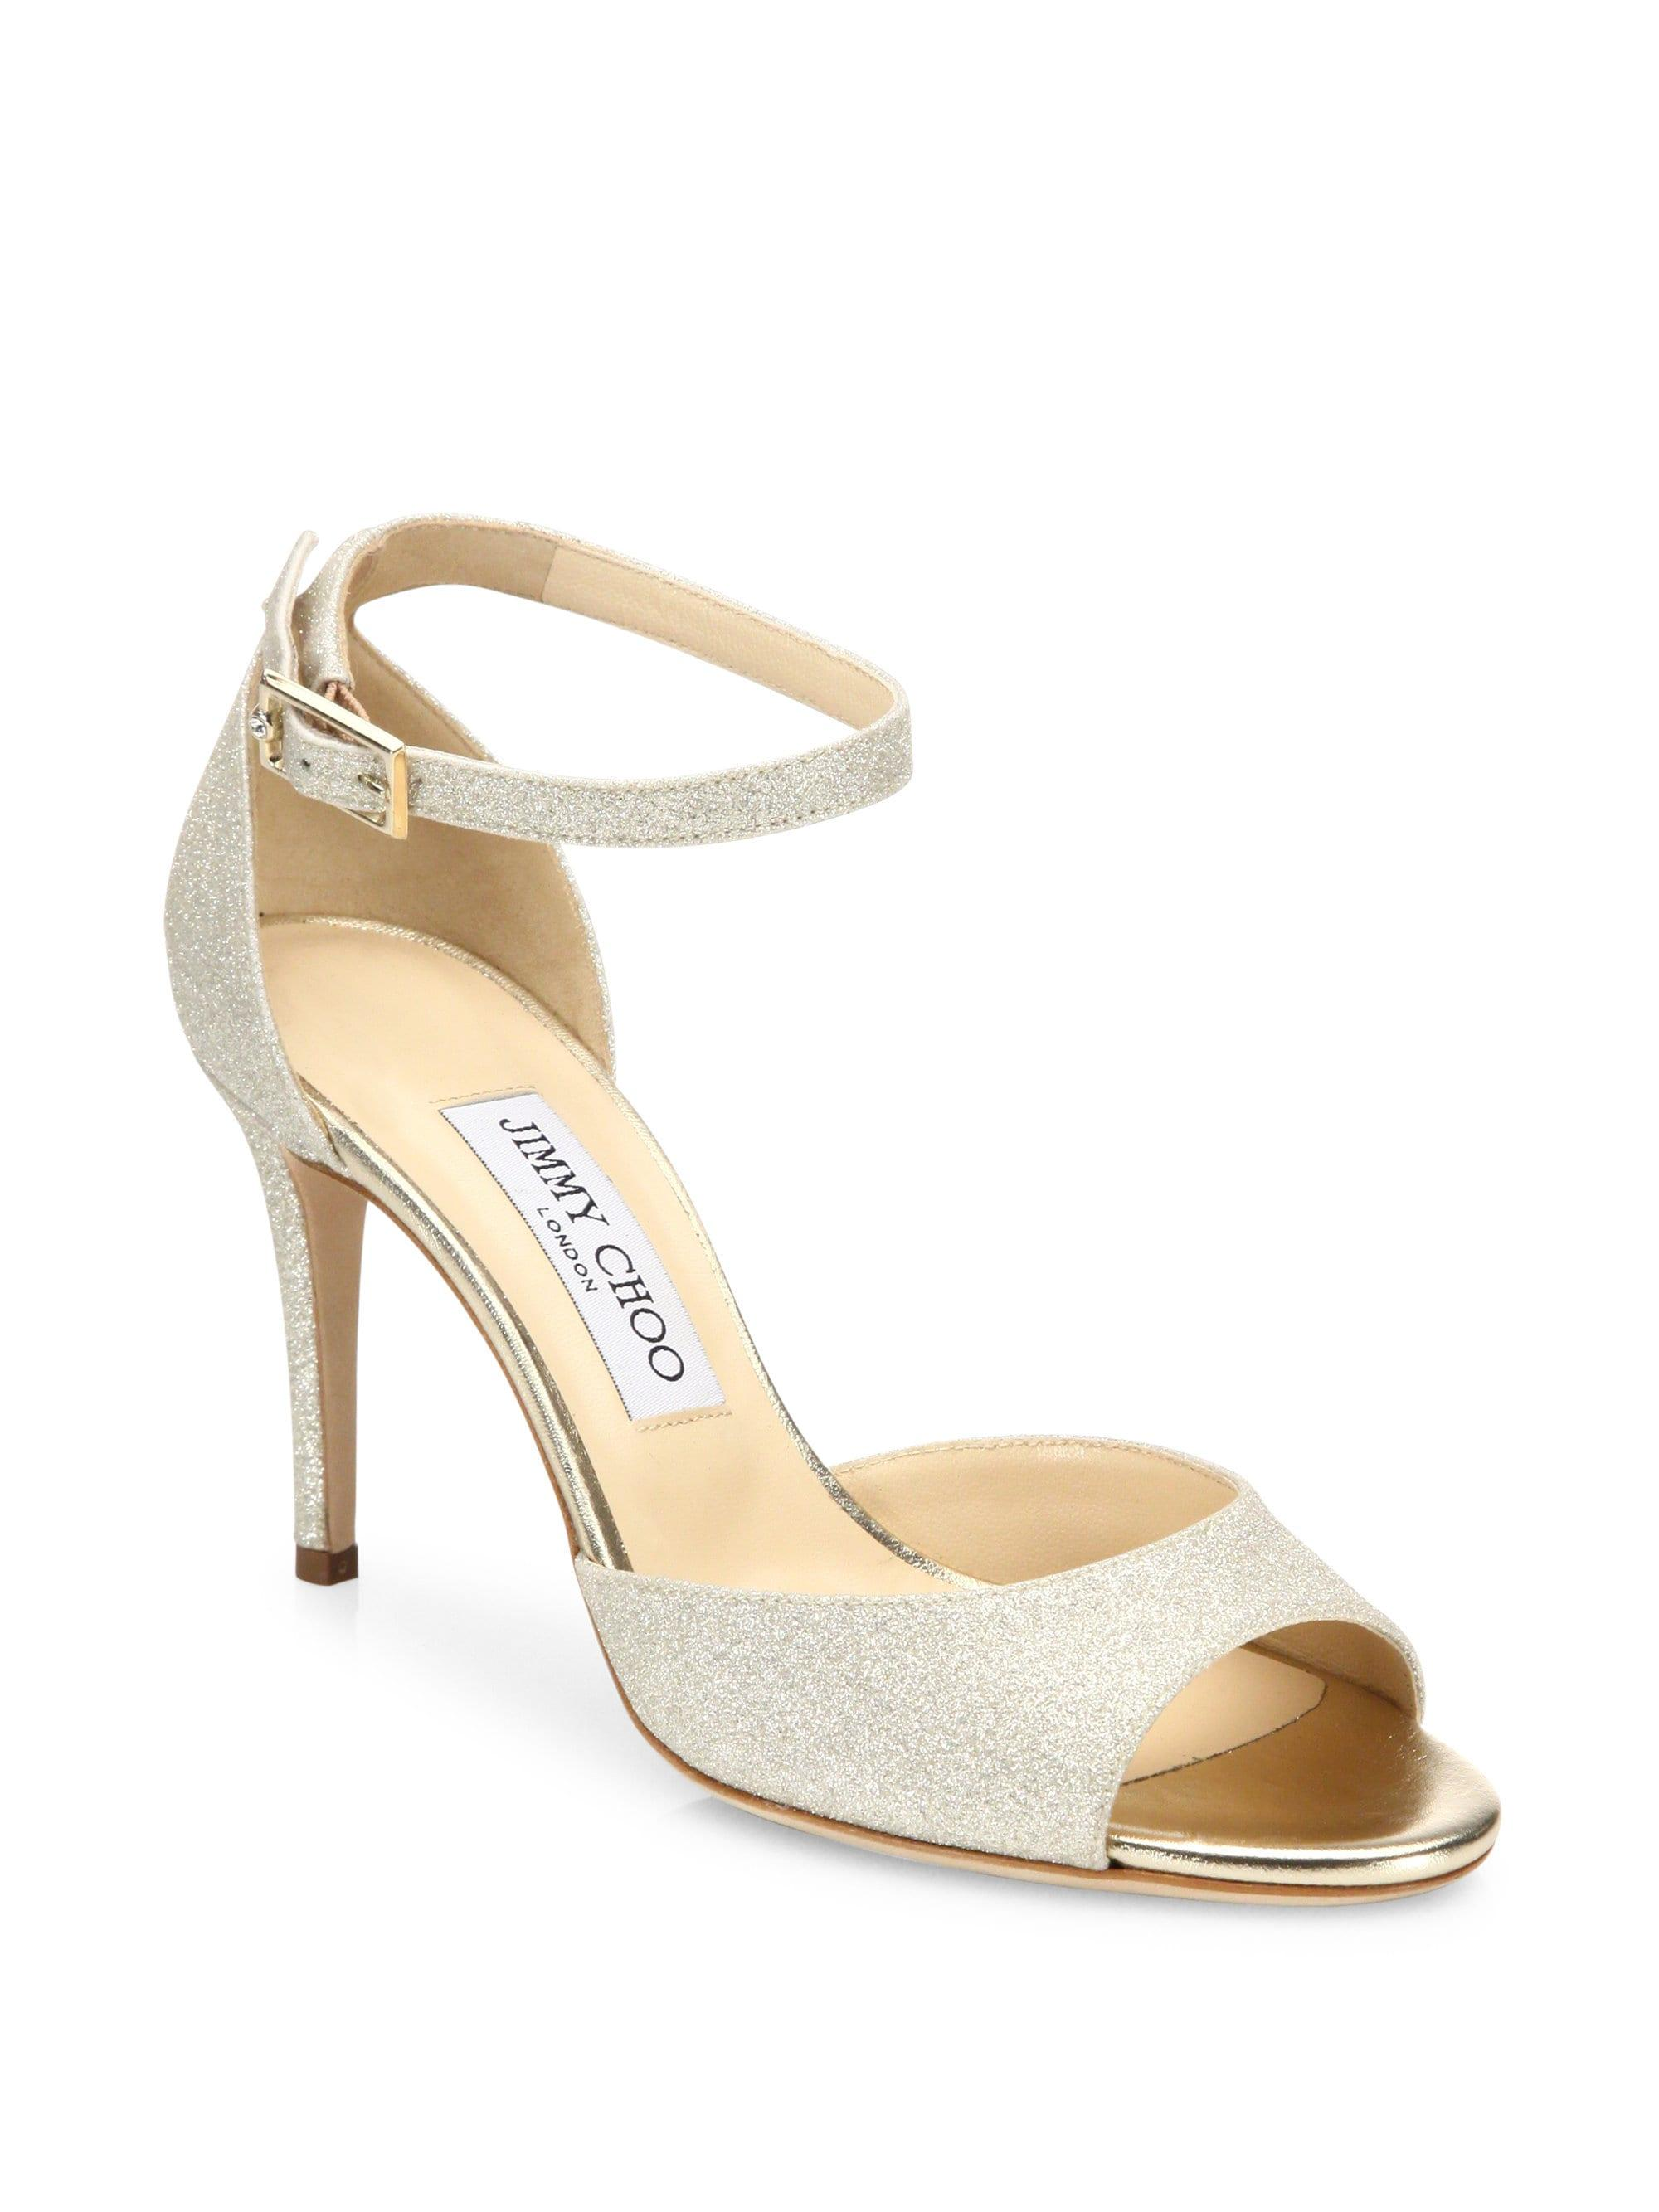 b62eacd7848 Gallery. Previously sold at  Saks Fifth Avenue · Women s Jimmy Choo Glitter  ...